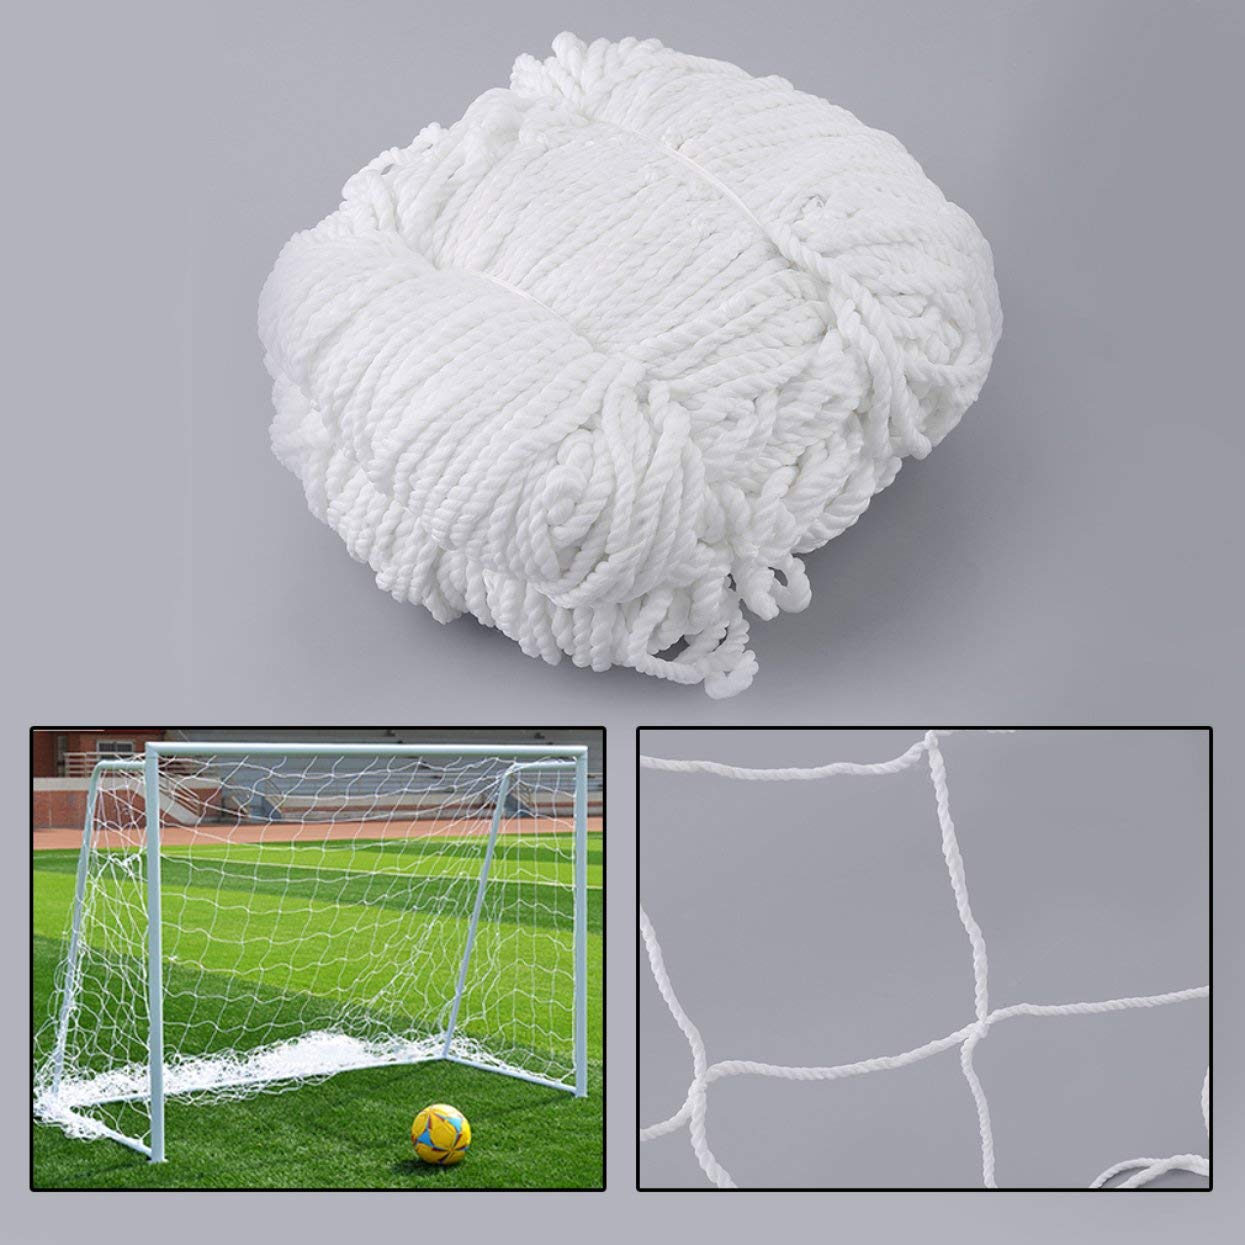 Tree-on-Life 3mx2m Football Soccer Goal Post Net Sports Match Training Replacement White Polypropylene Cotton Blended Material